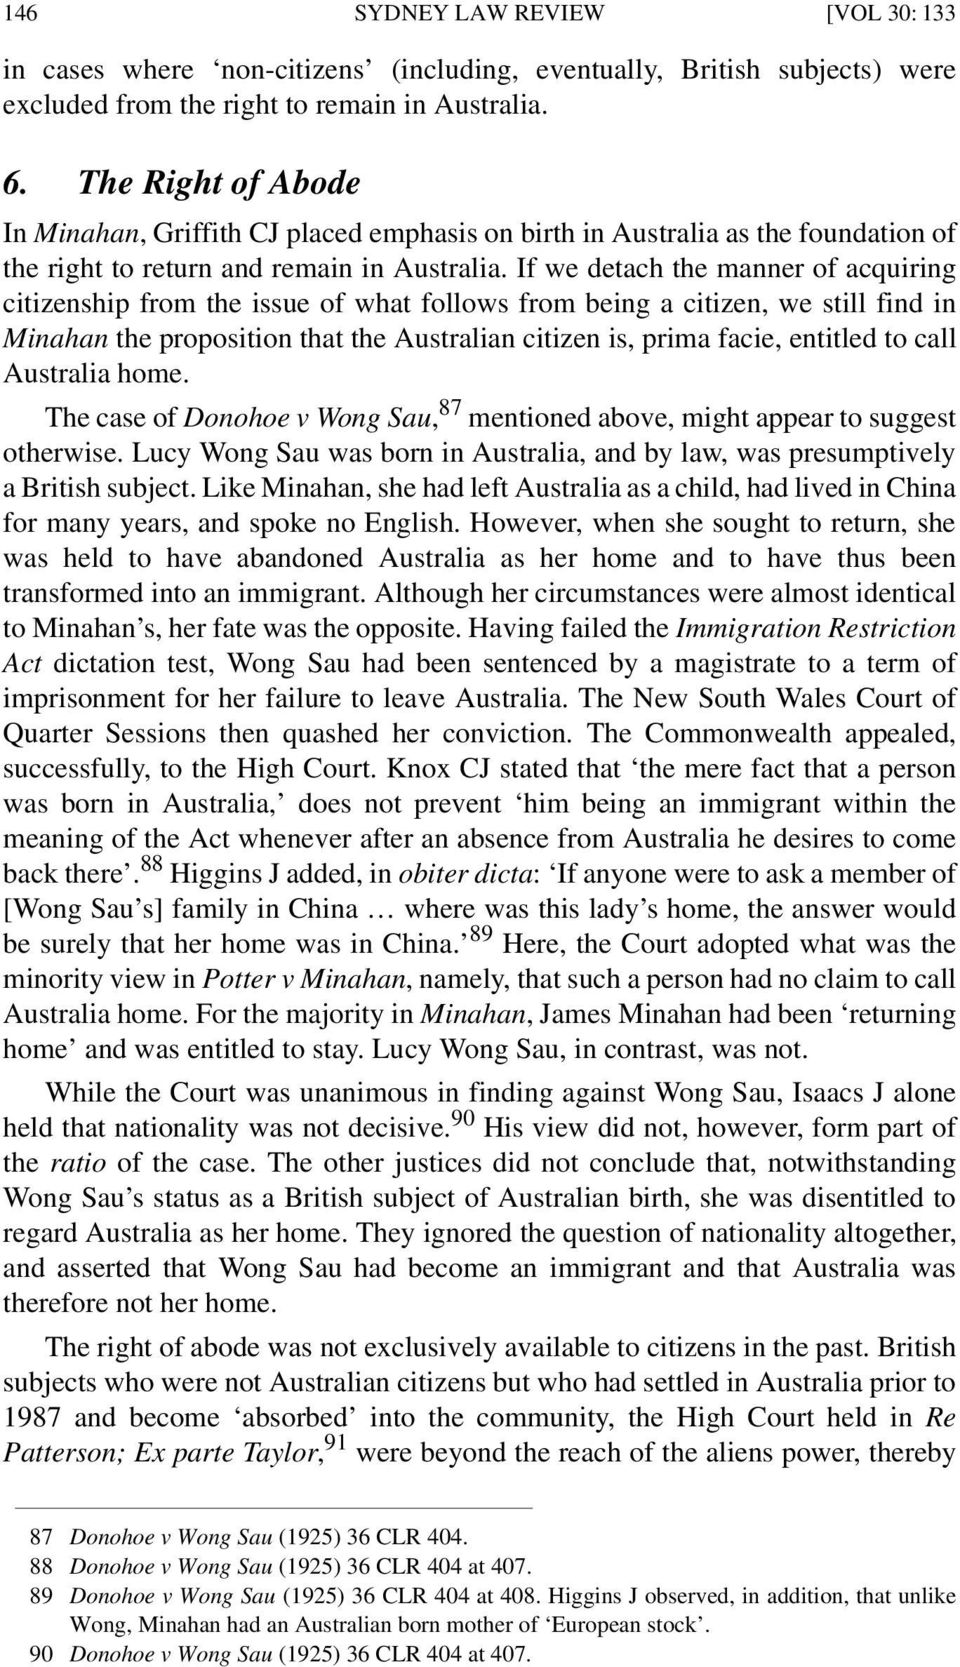 If we detach the manner of acquiring citizenship from the issue of what follows from being a citizen, we still find in Minahan the proposition that the Australian citizen is, prima facie, entitled to